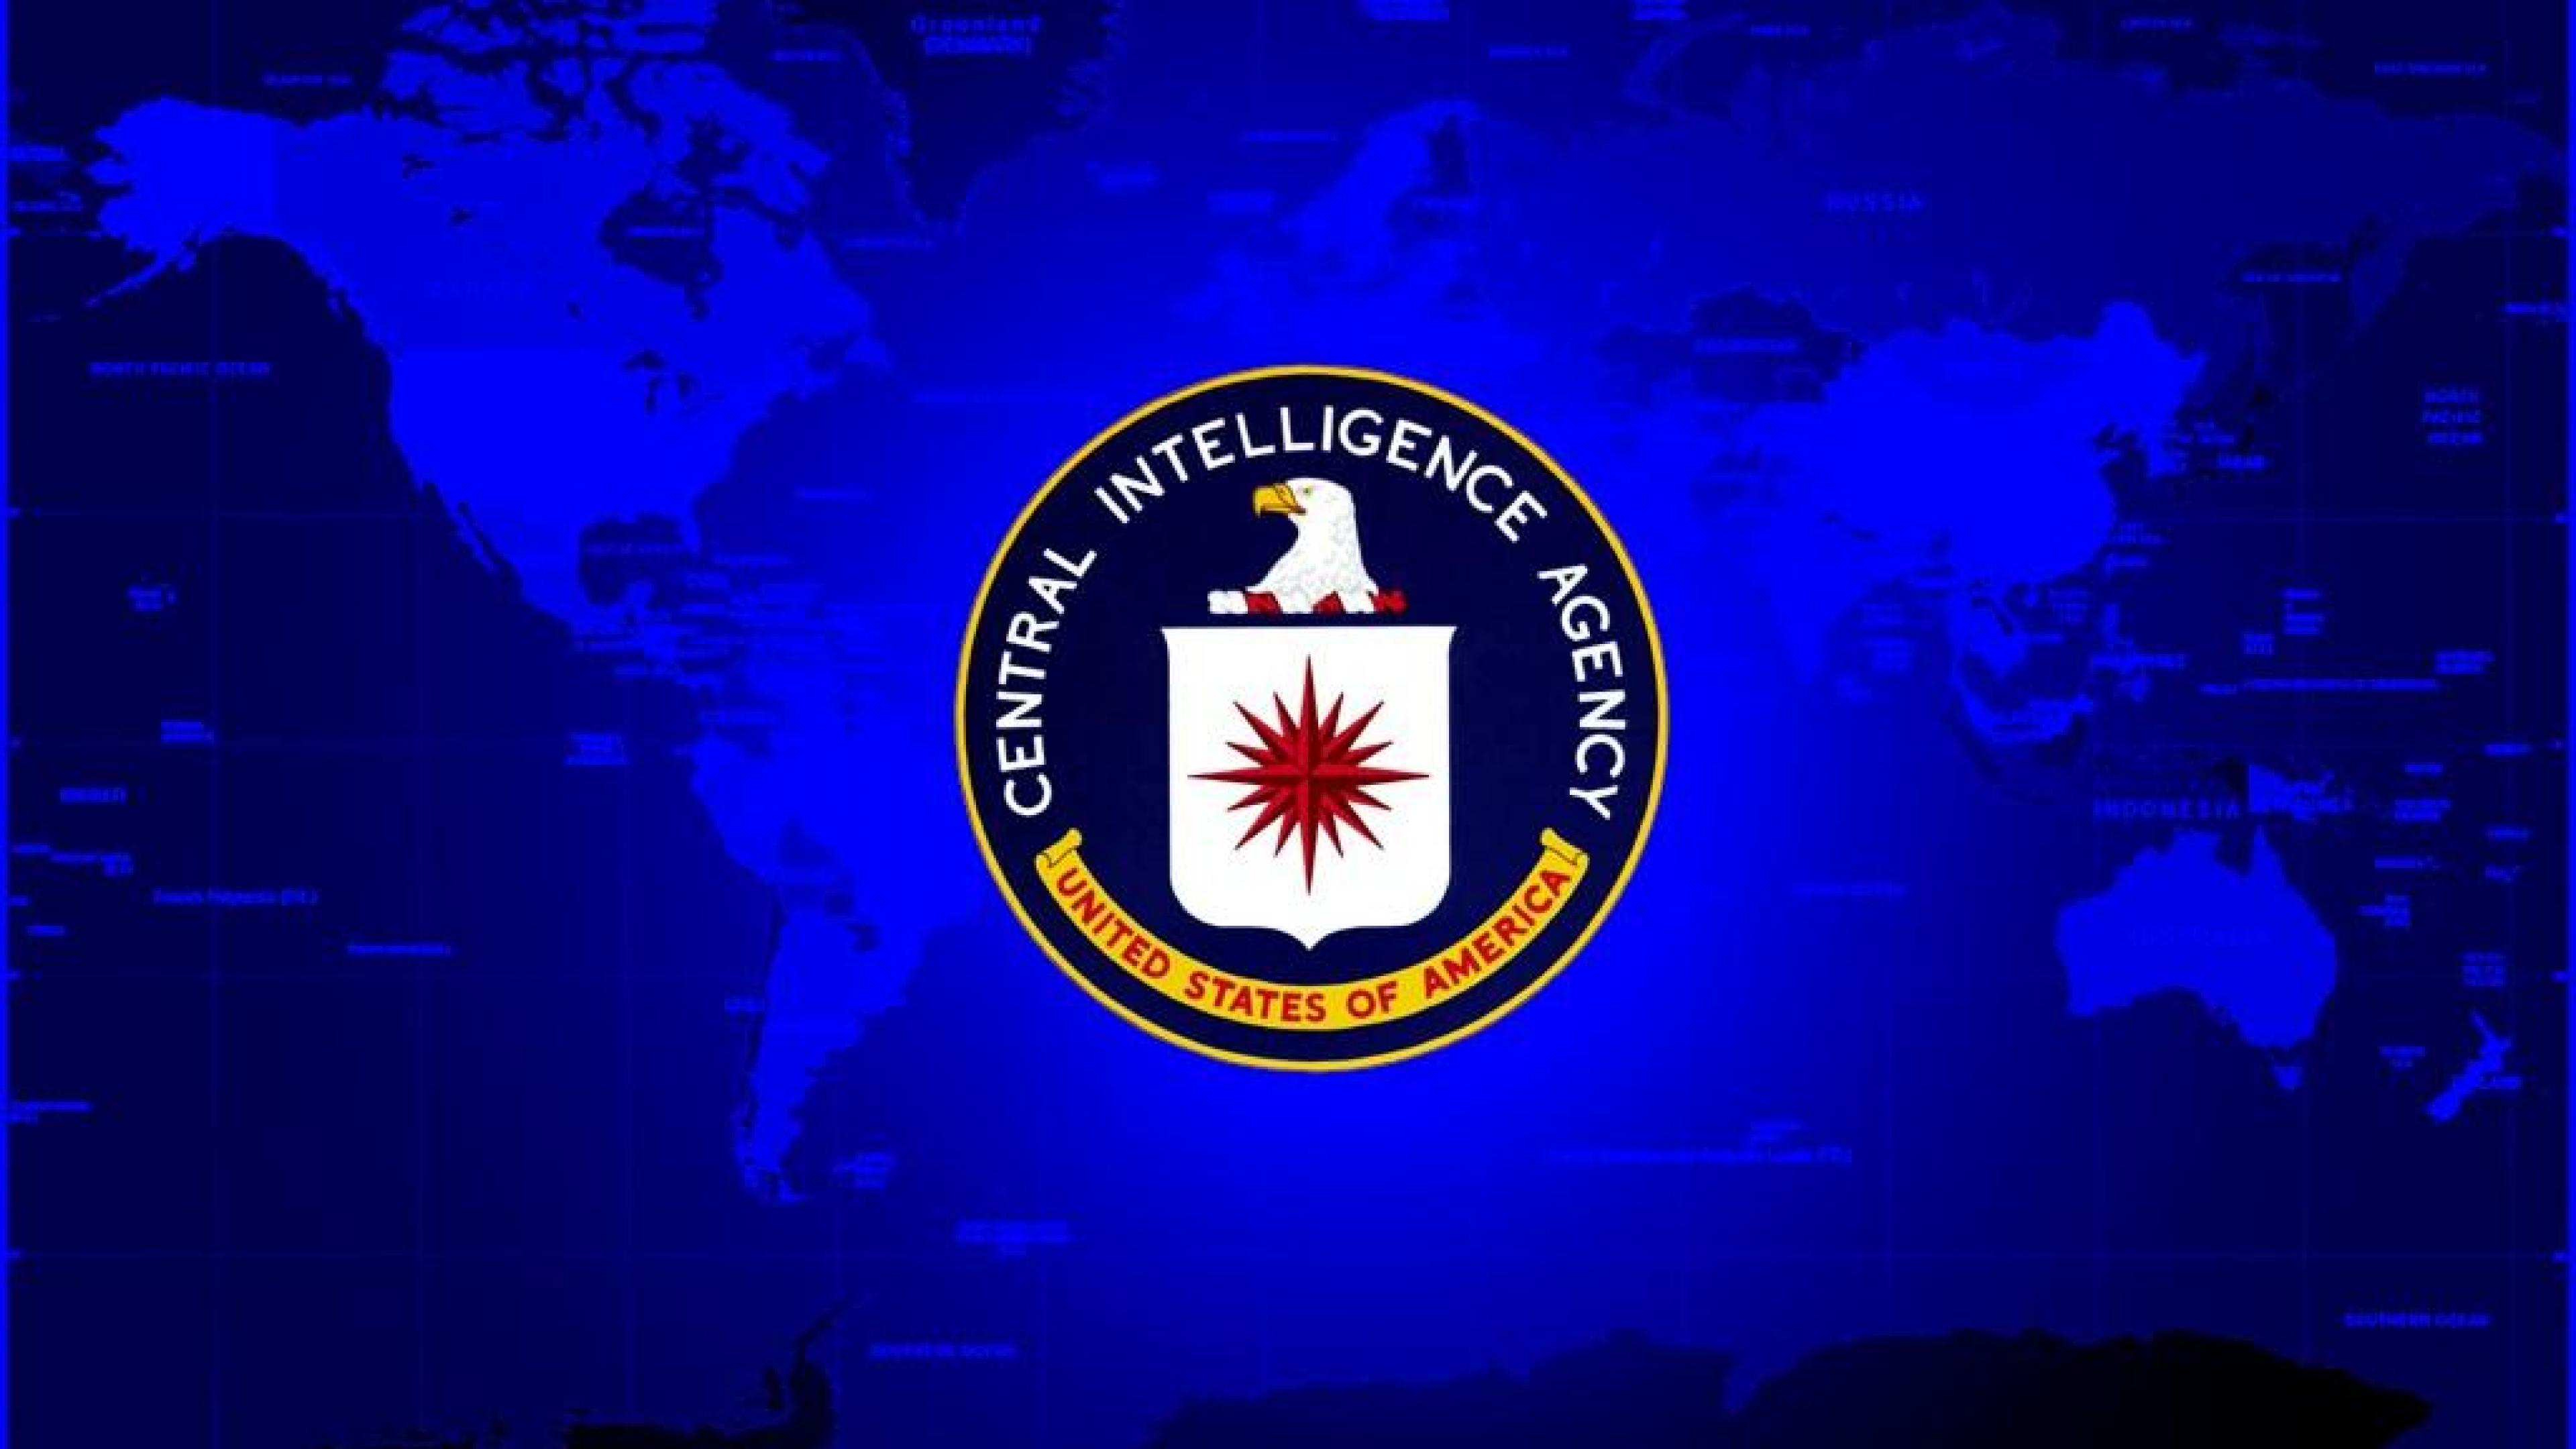 Cia Logo Wallpaper Page 1